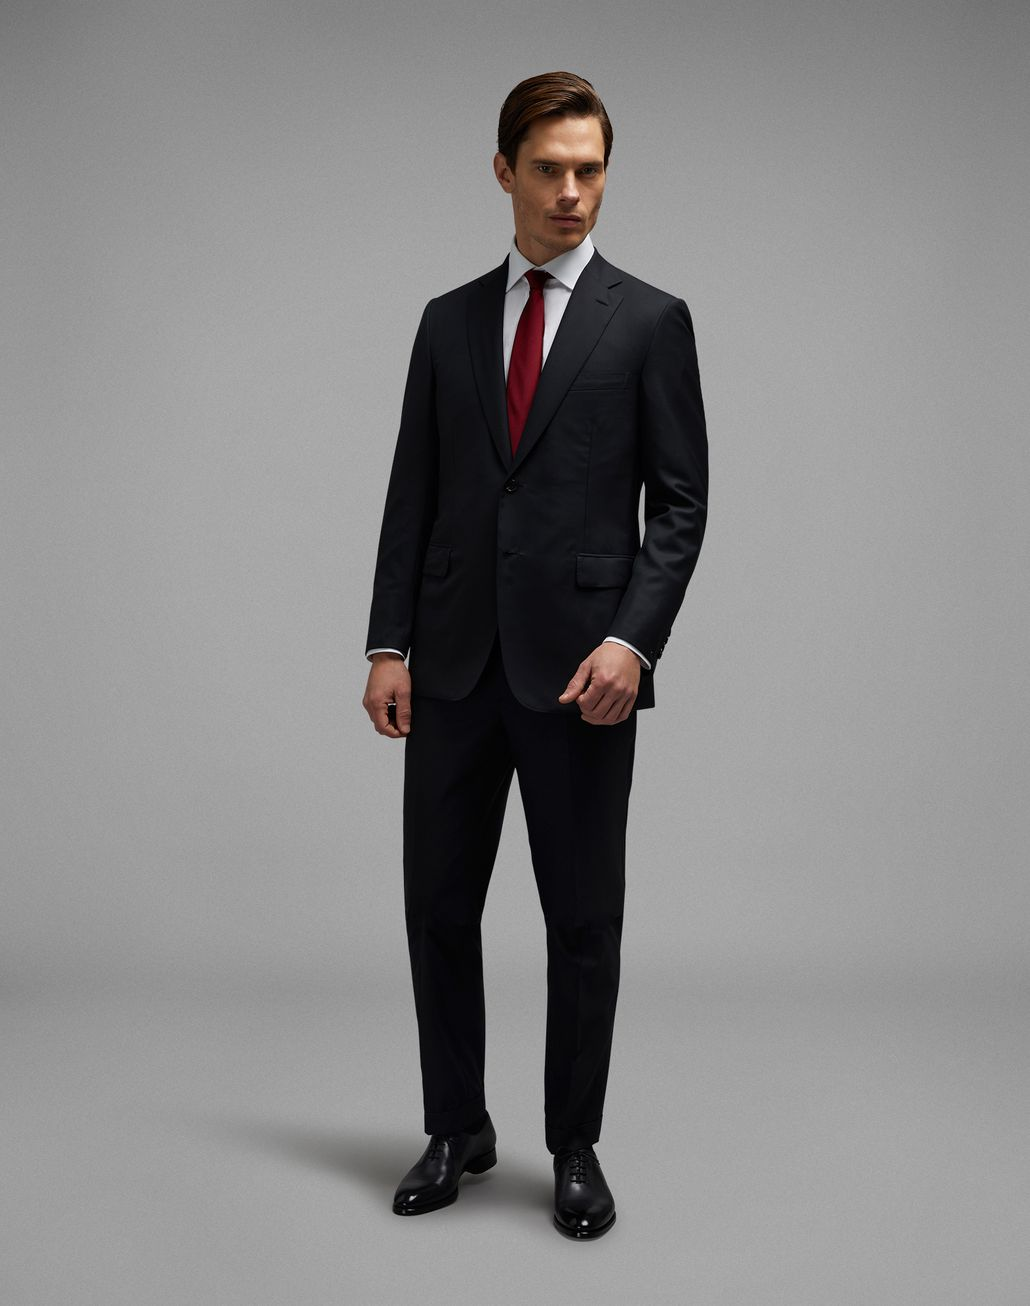 BRIONI 'Essential' Black Brunico Suit Suits & Jackets Man r